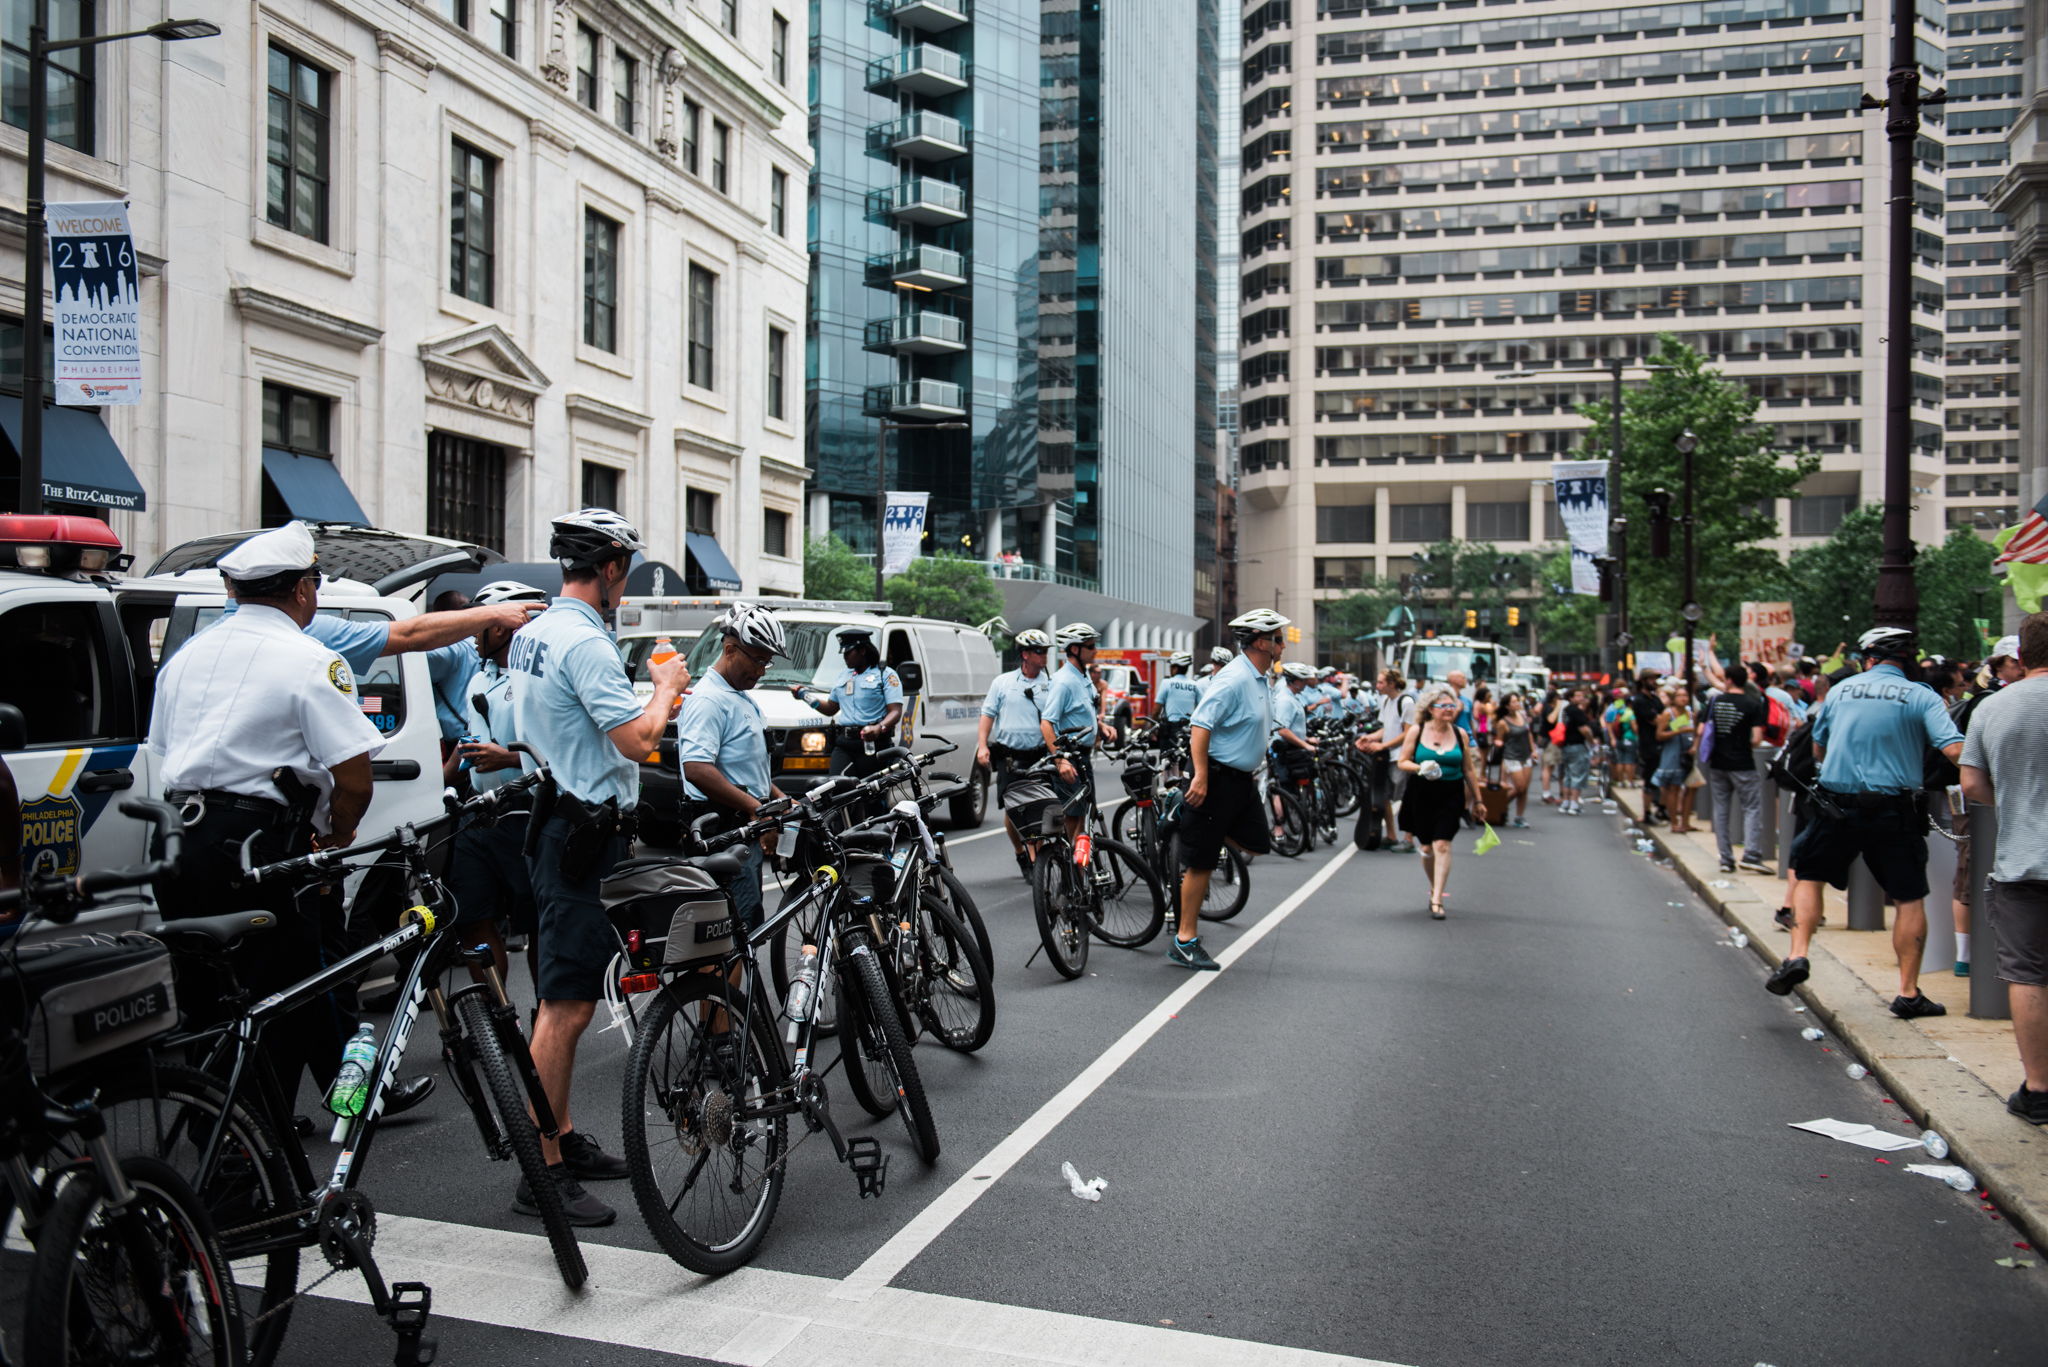 Philadelphia Police were very present throughout the DNC. The police were very well organized and professional - answering questions by puzzled locals and defusing situations between rival protesting groups. Here the police line up to keep march participants near the sidewalk until the protest from Philadelphia City Hall to Wells Fargo Center began.